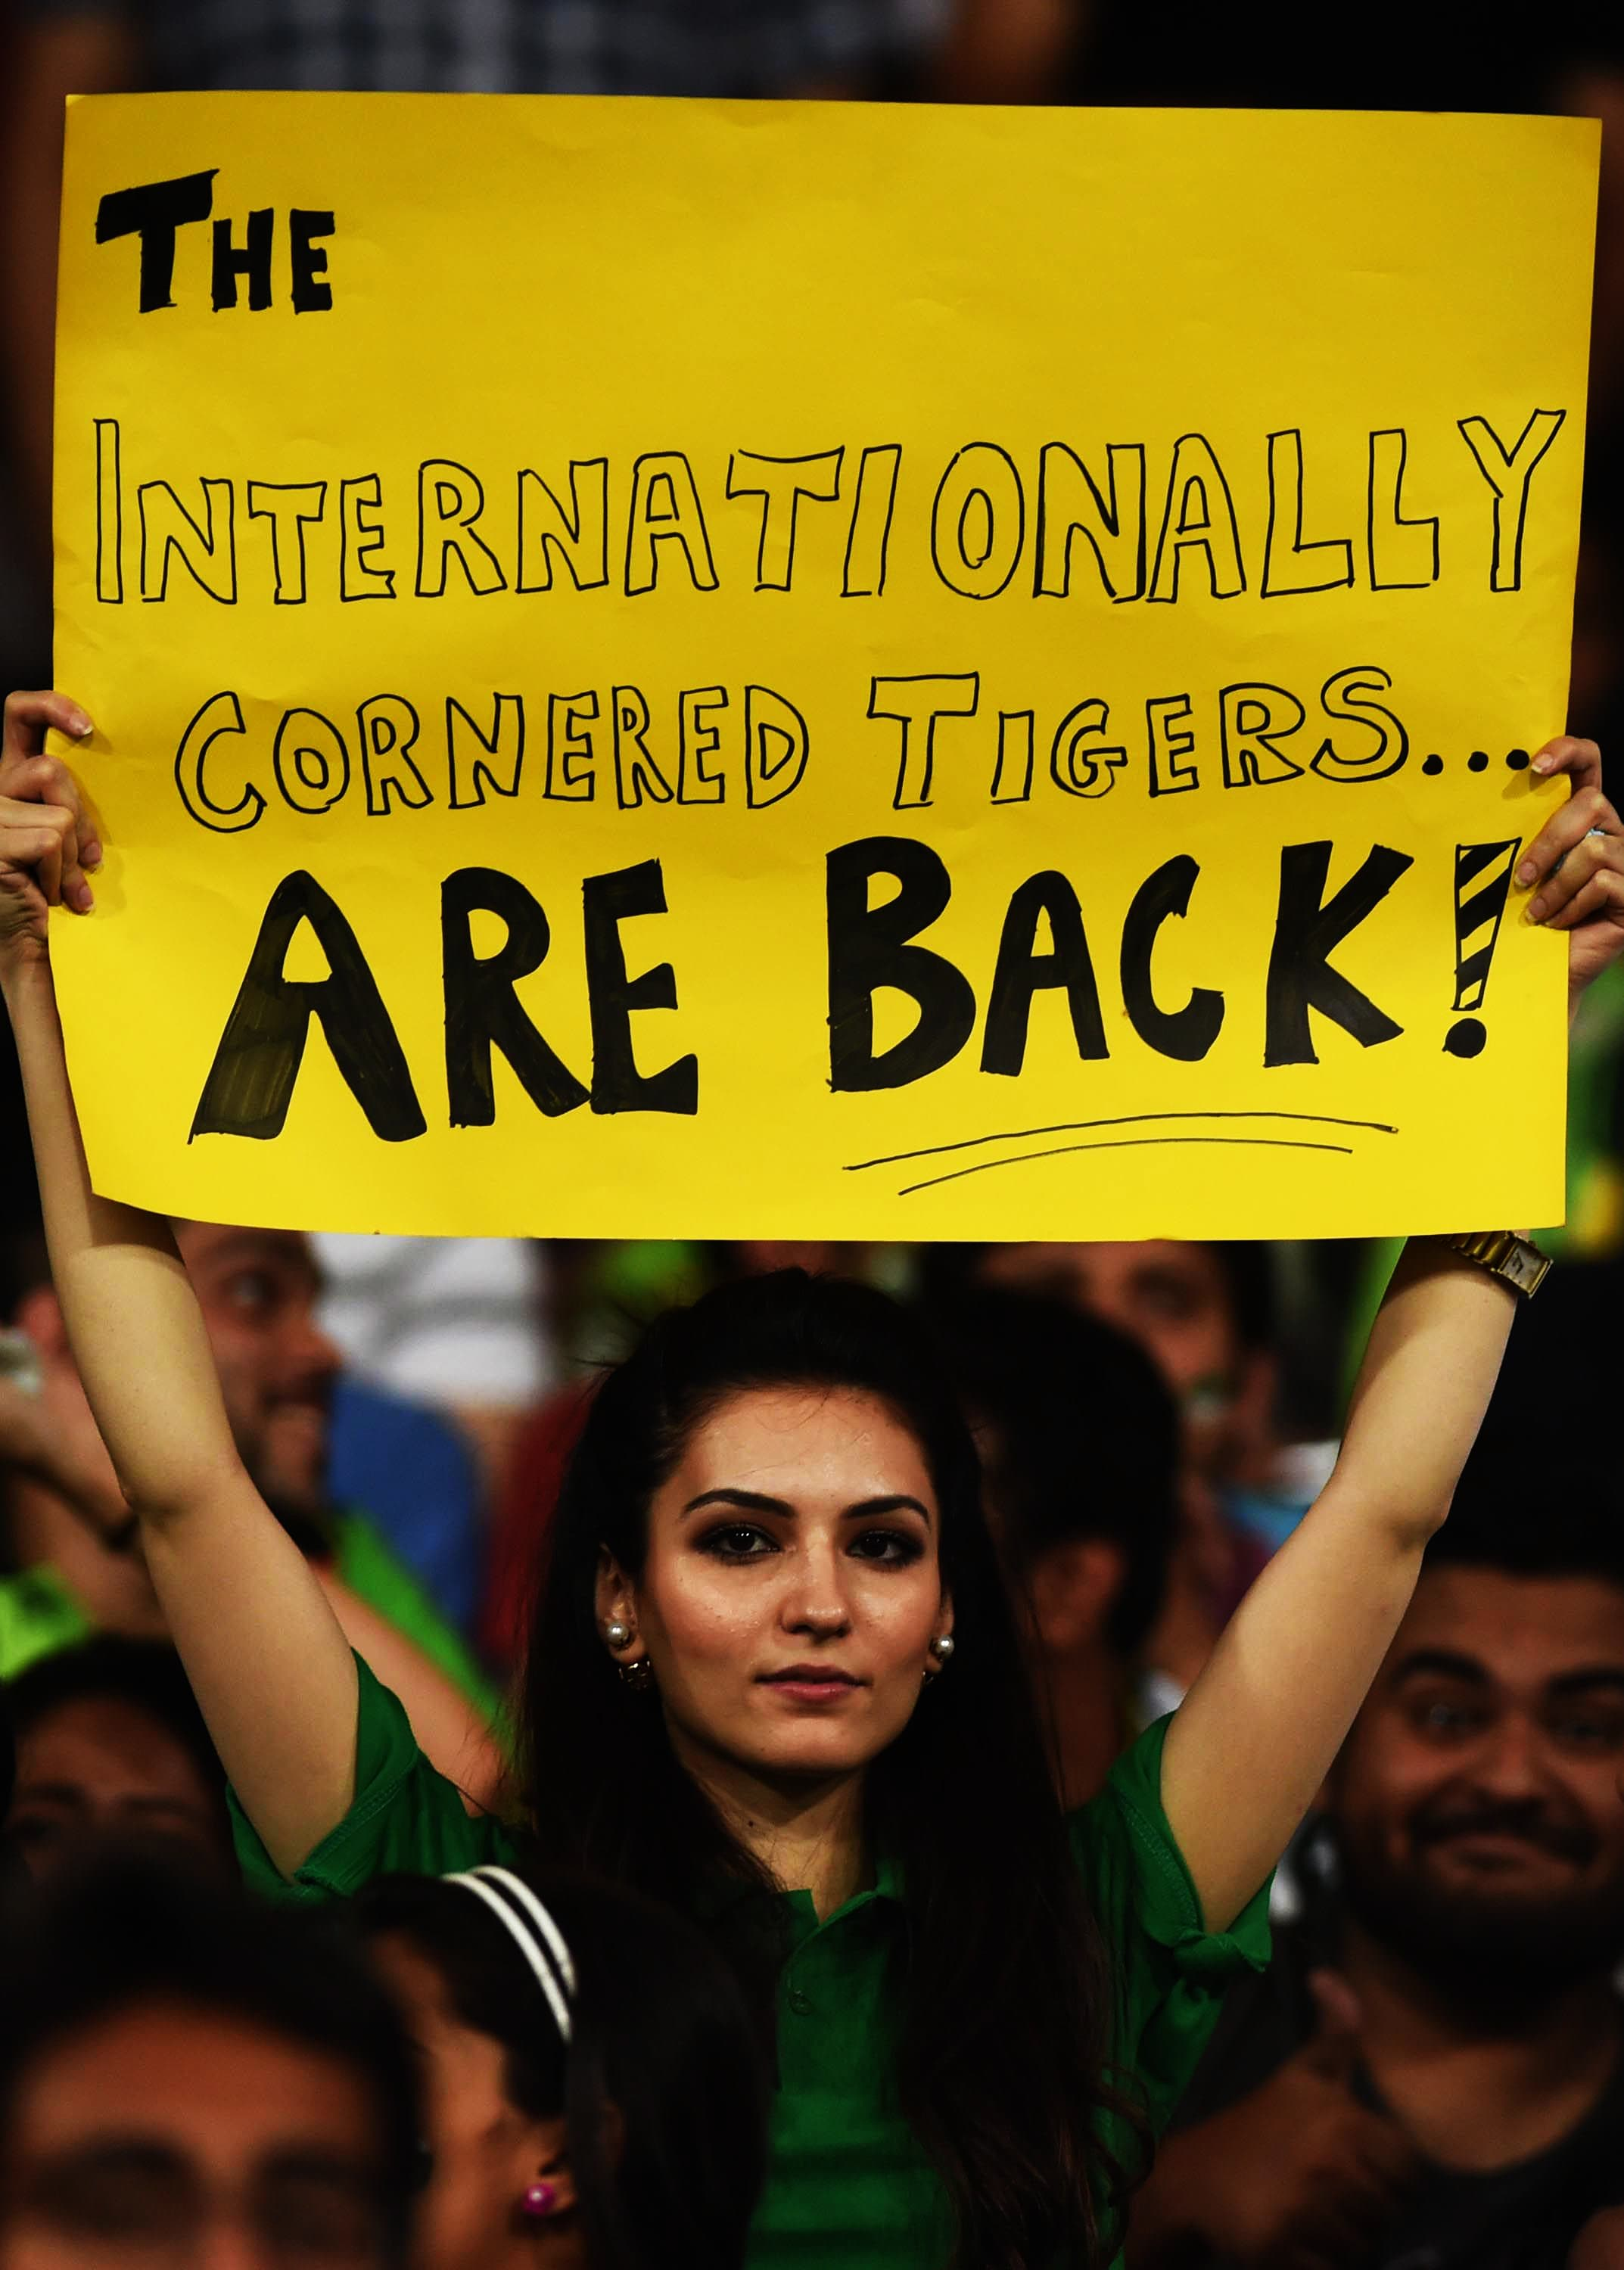 A fan holds aloft a banner during the T20 match between Pakistan and Zimbabwe at the Gaddafi Stadium in Lahore on May 24, 2015. — AFP